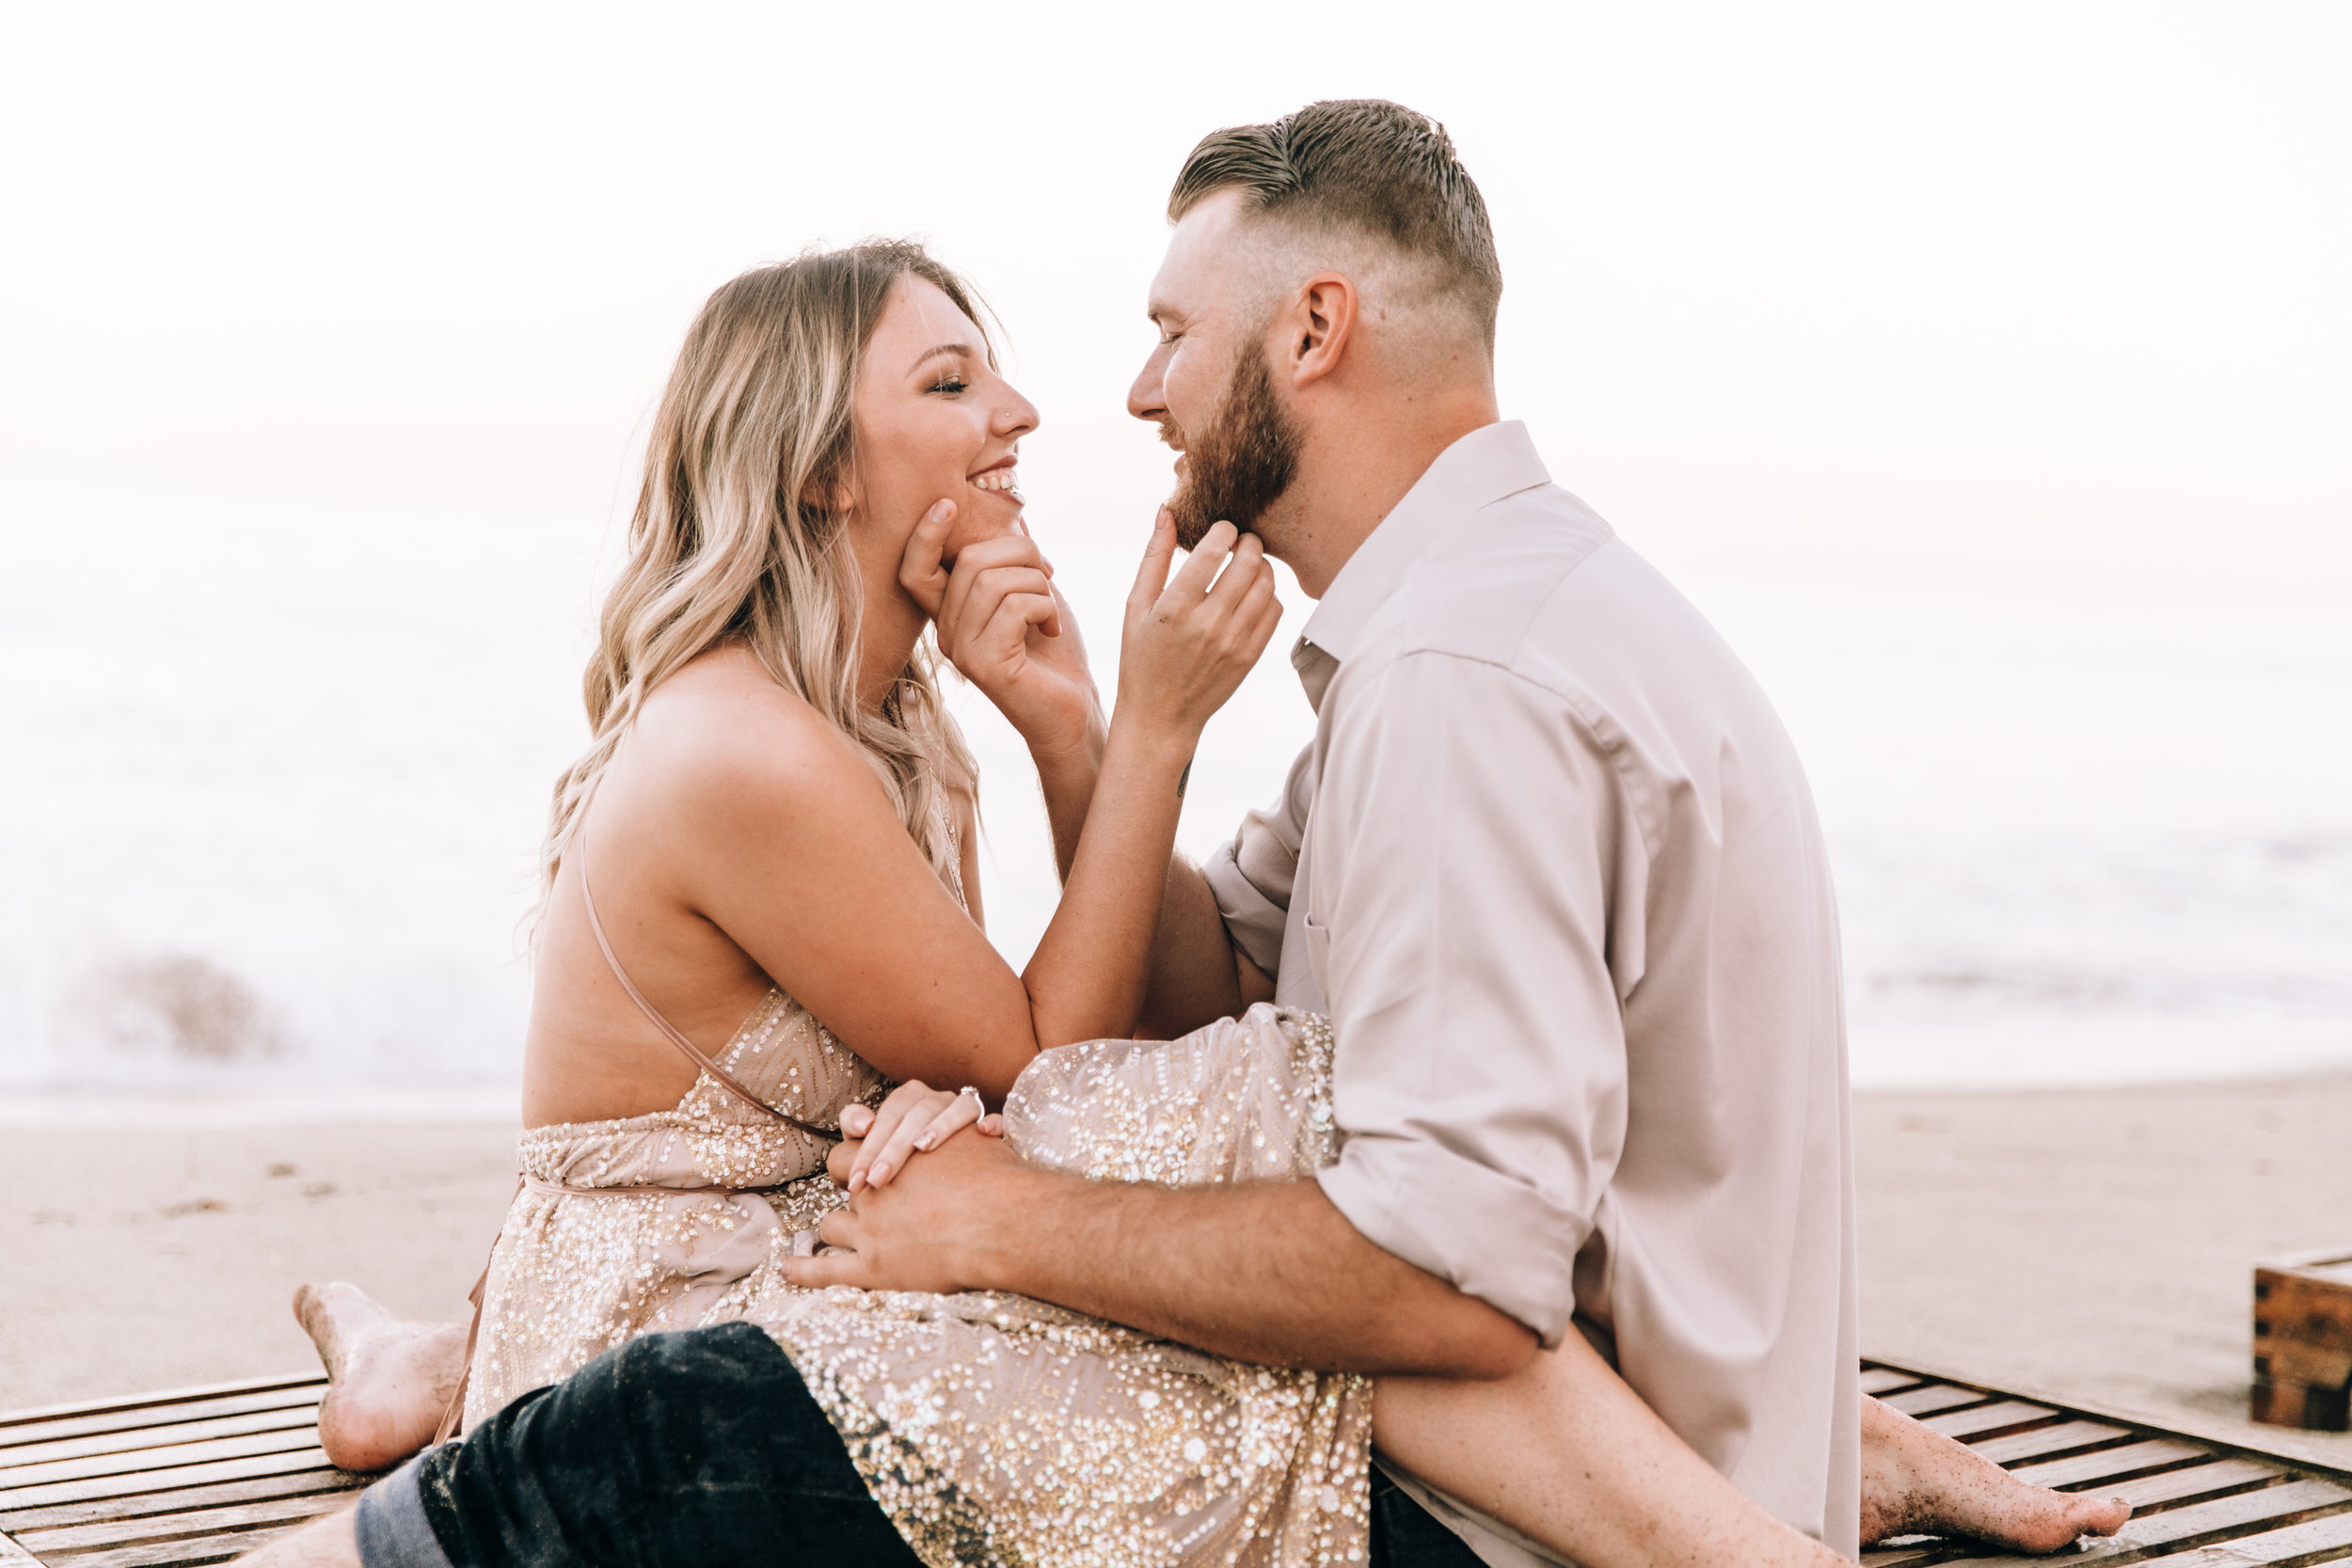 KaraNixonWeddings-Malibu-Engagementshoot-48.jpg